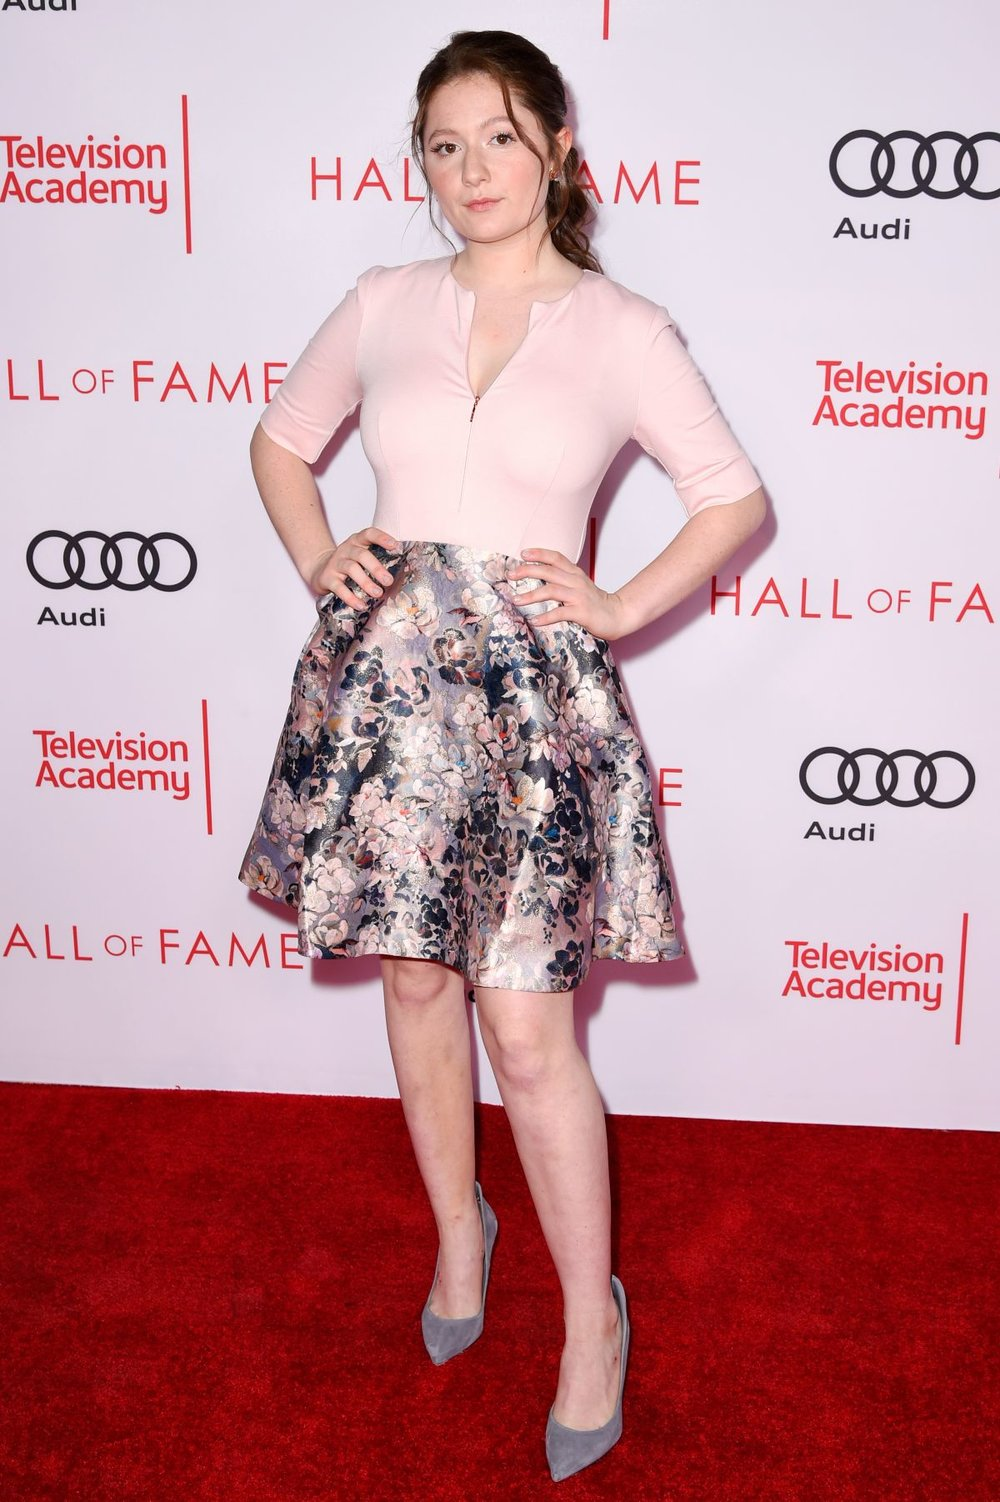 emma-kenney-at-television-academy-hall-of-fame-induction-in-los-angeles-11-15-2017-8.jpg